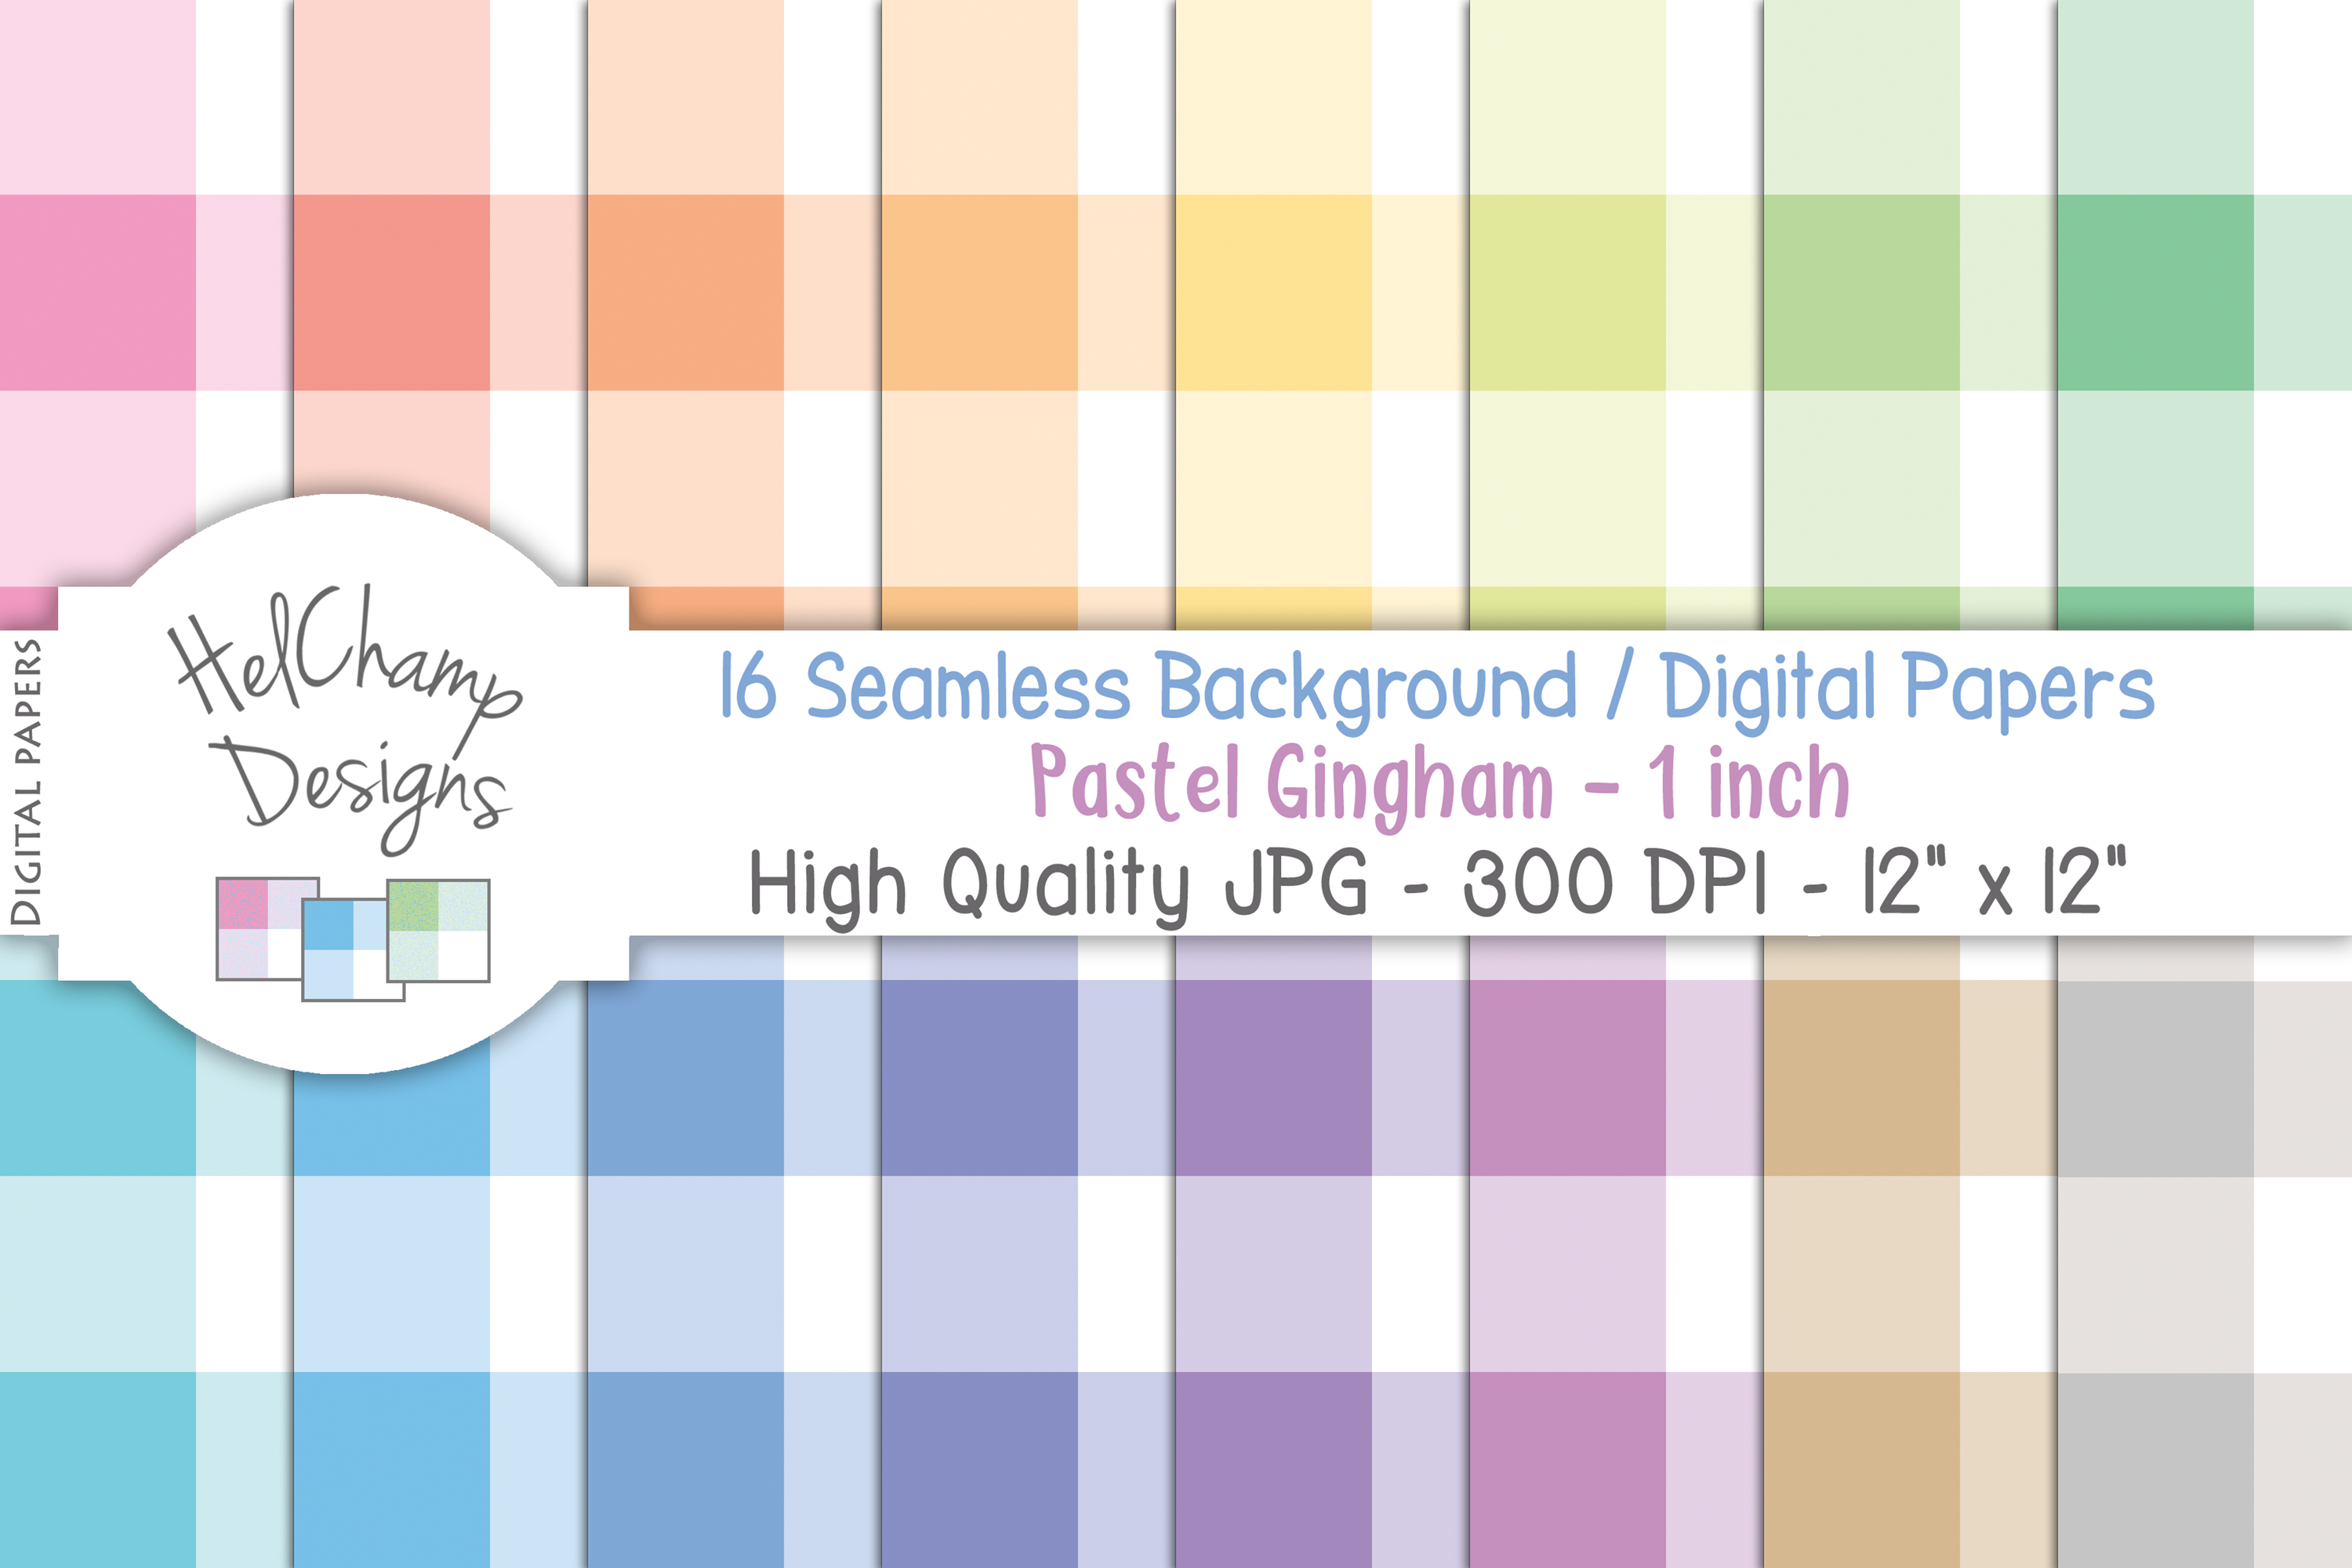 16 seamless Digital Papers - Pastel Gingham 1 inch - HC003 example image 1